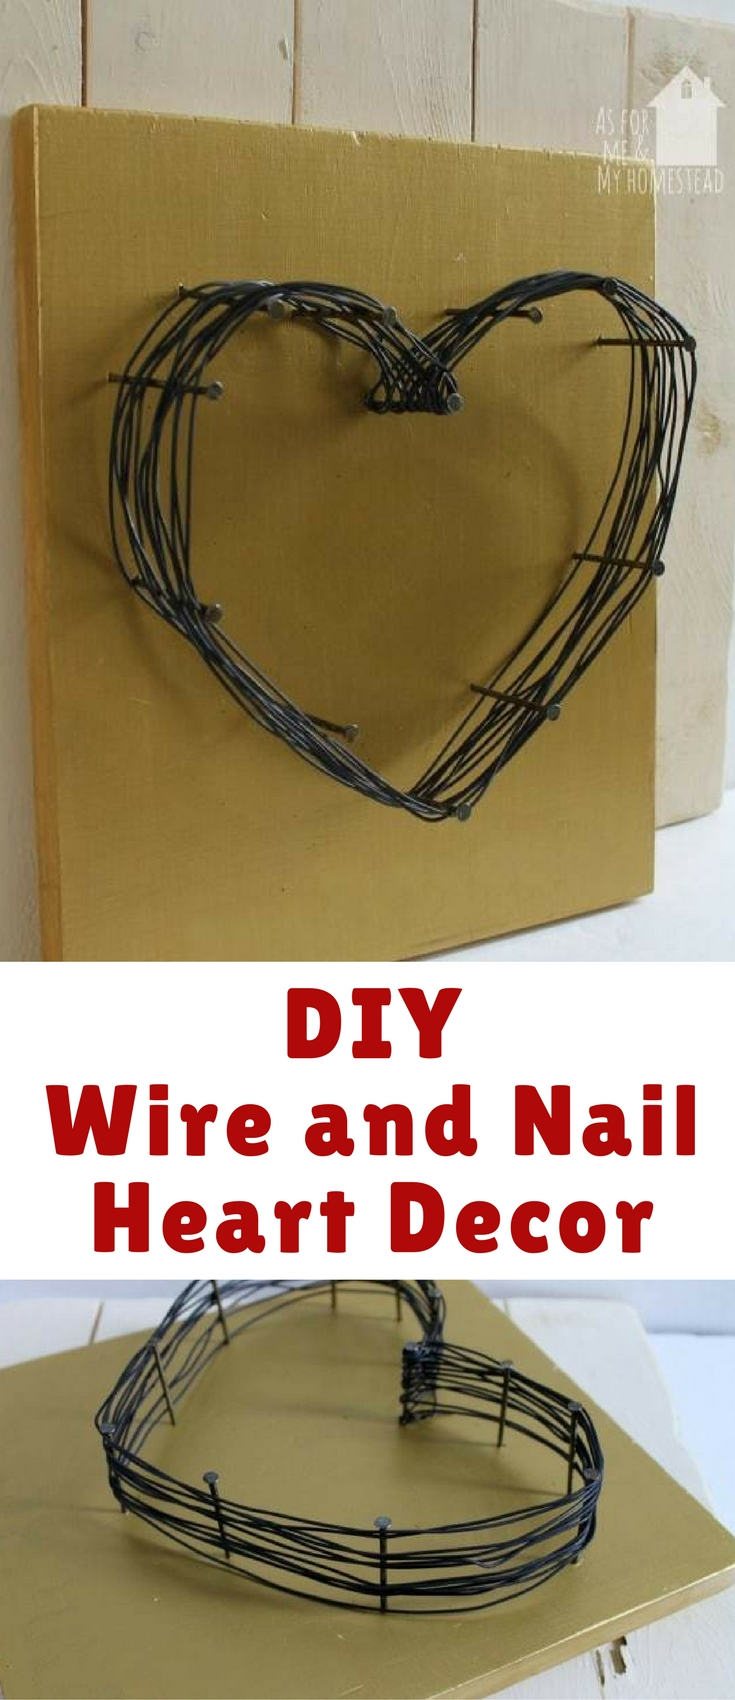 Rustic and simple wire and nail heart decor is easy decor on a small budget!